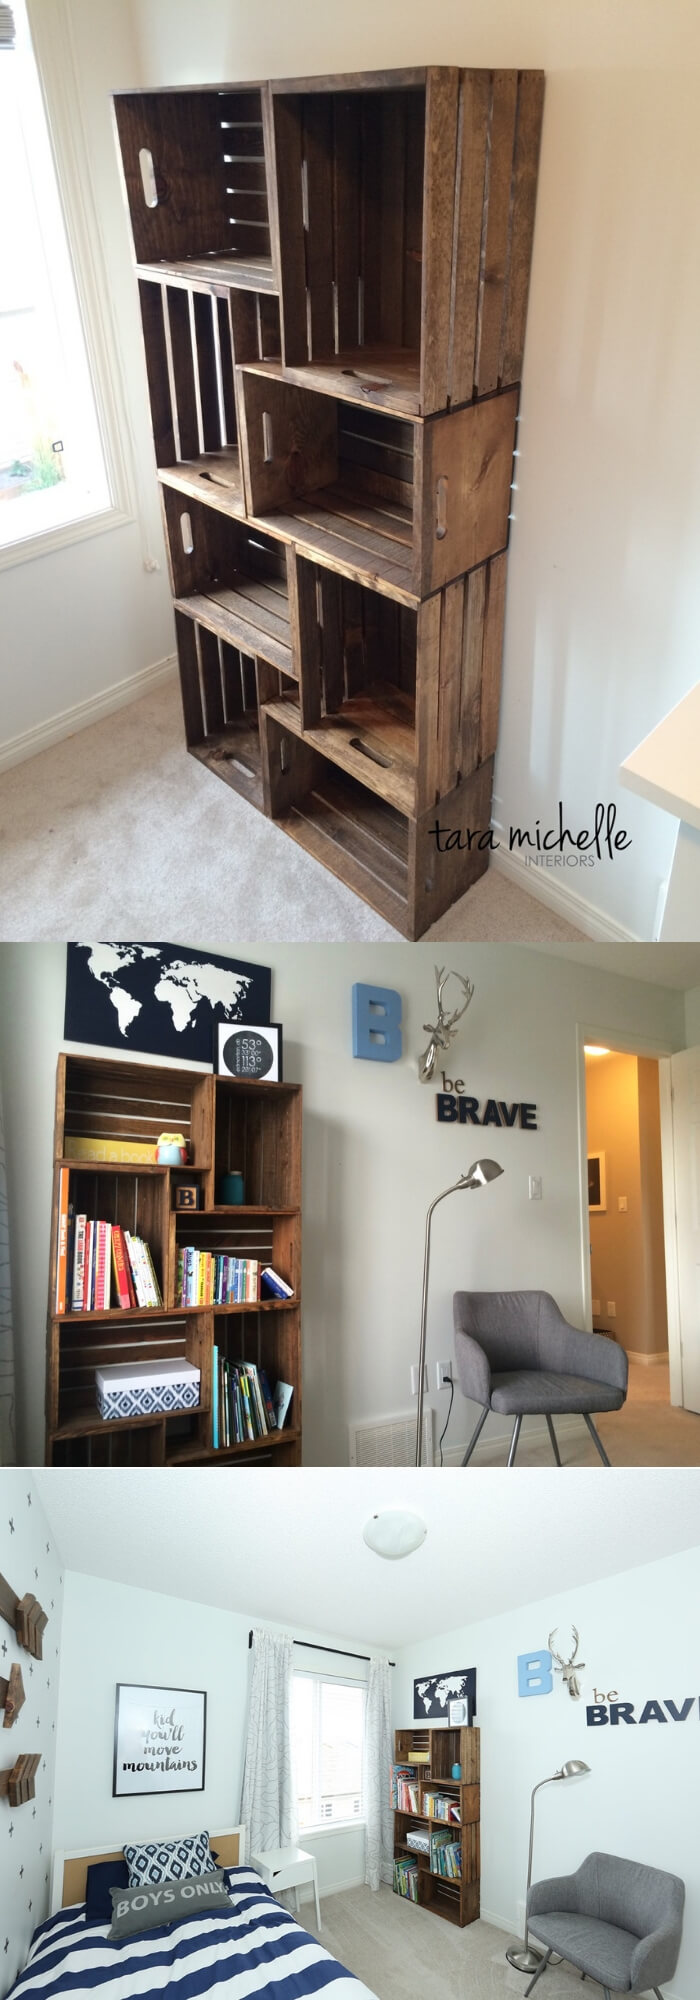 DIY Crate Bookshelf | Best DIY Wood Crate Projects & Ideas